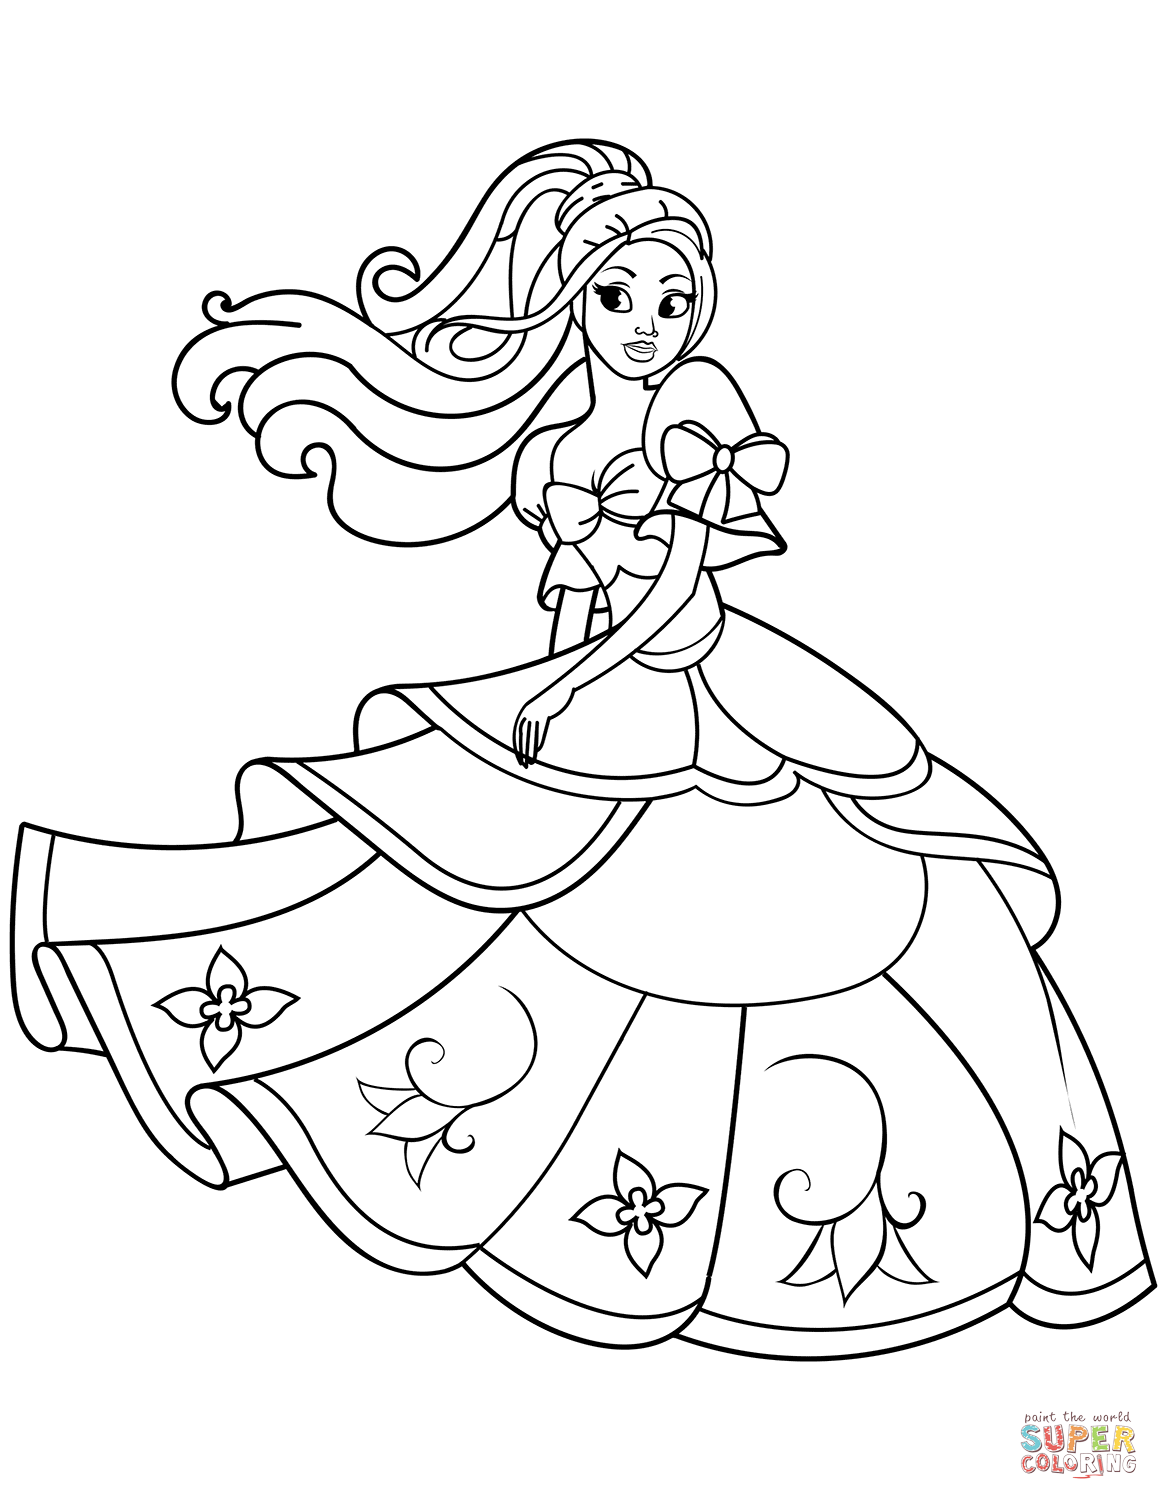 Dancing Princess coloring page | Free Printable Coloring Pages | free online coloring pages disney princesses